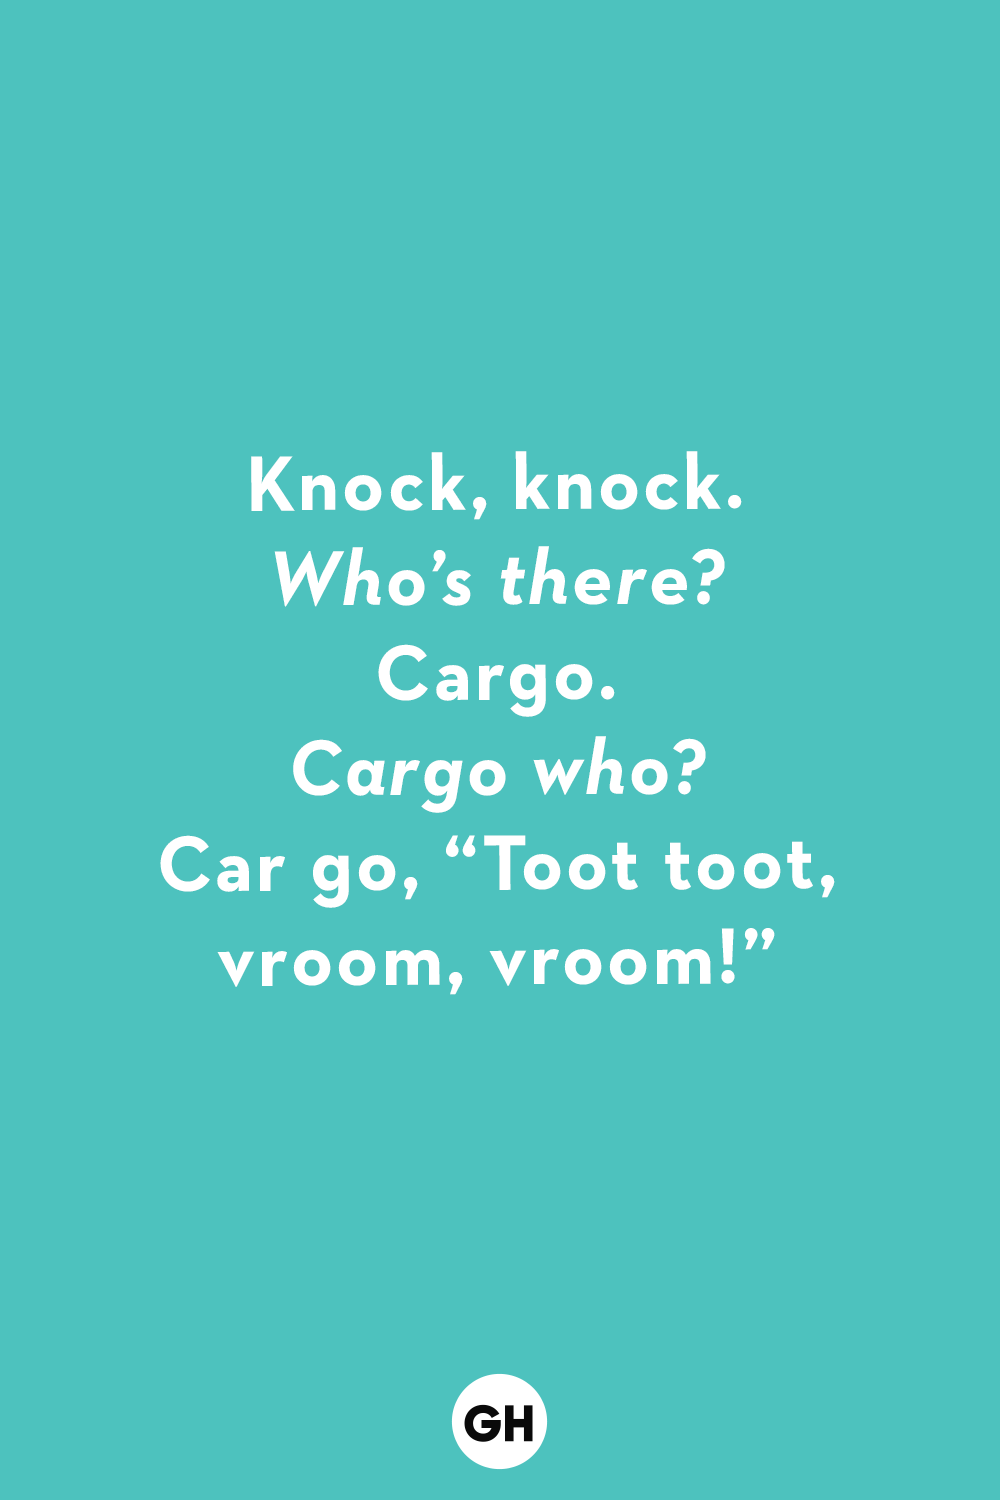 The Best Jokes for Kids - Family-Friendly Gags, Knock-Knock Jokes, and Riddles